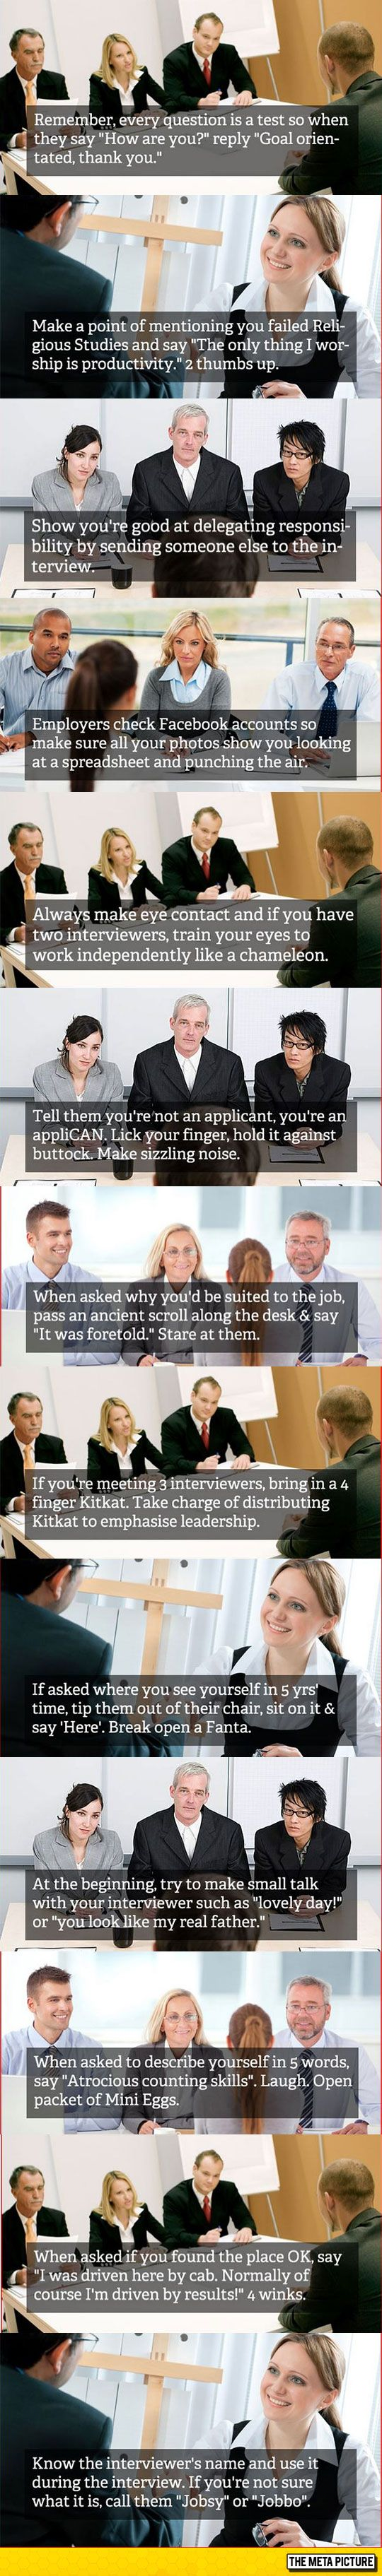 best ideas about job interview funny life hacks some good job interview tips